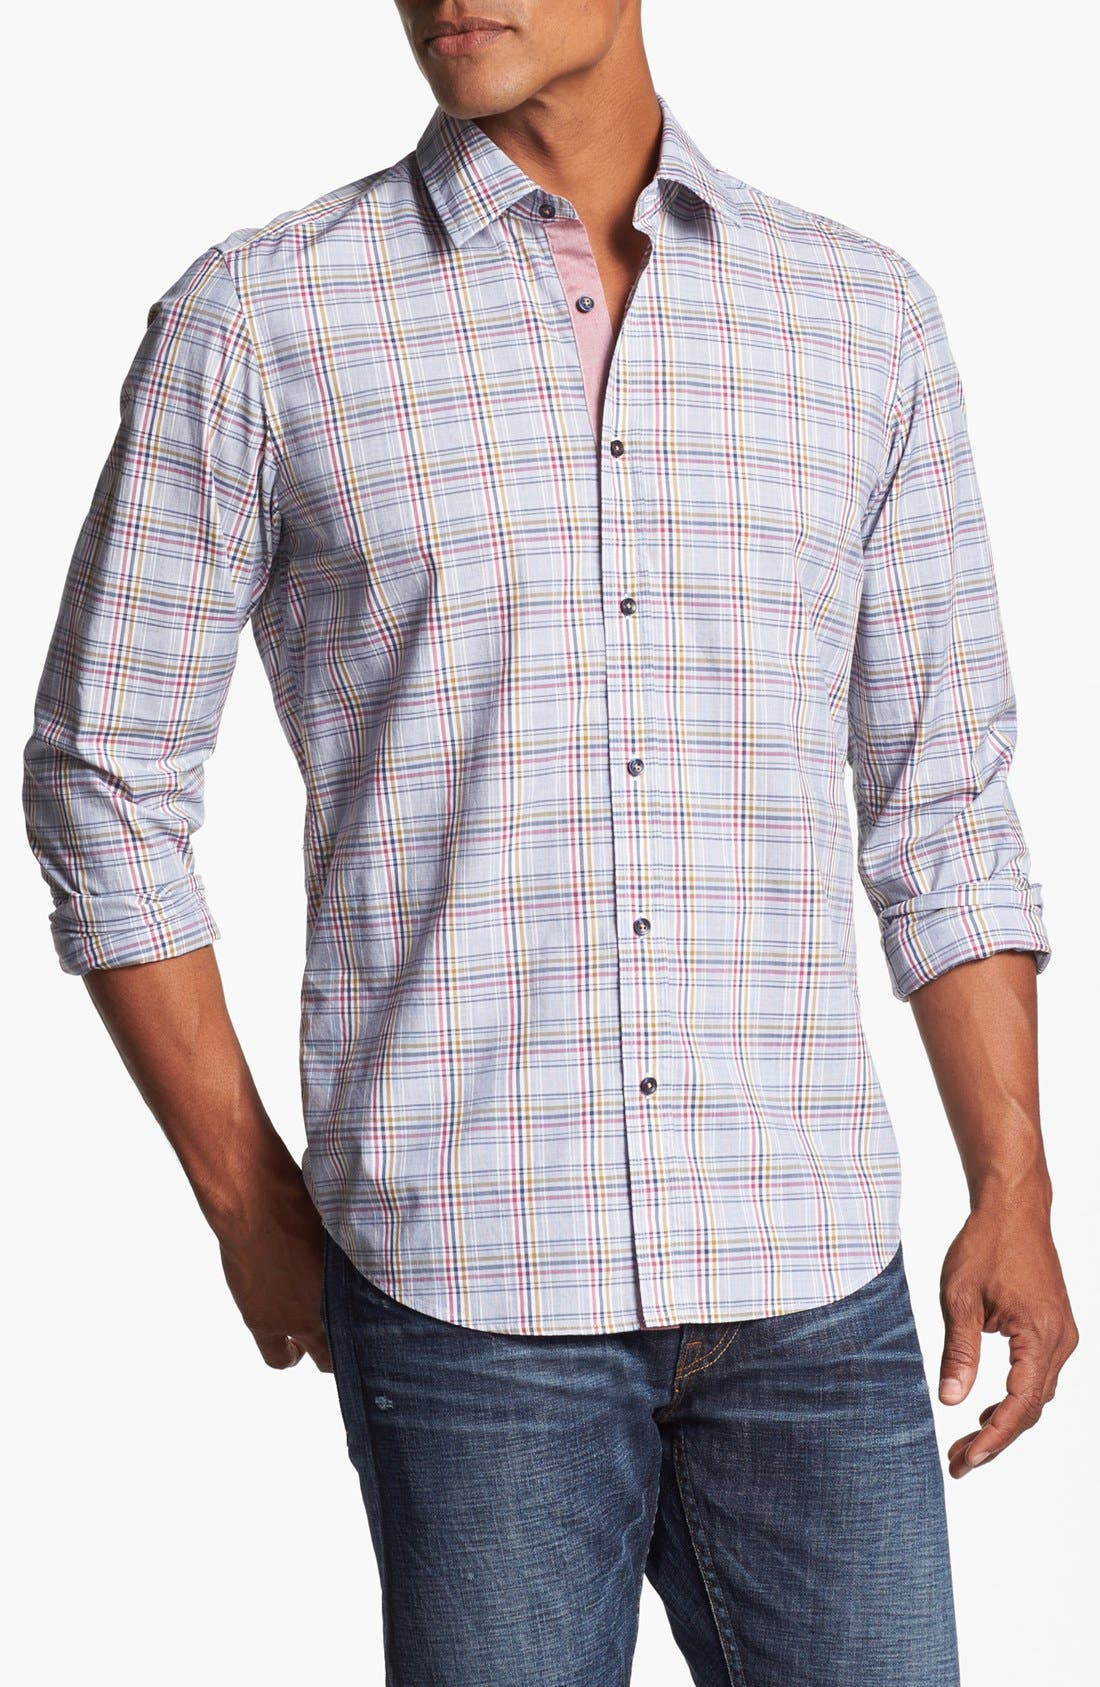 Alternate Image 1 Selected - BOSS HUGO BOSS 'Lucas' Regular Fit Sport Shirt